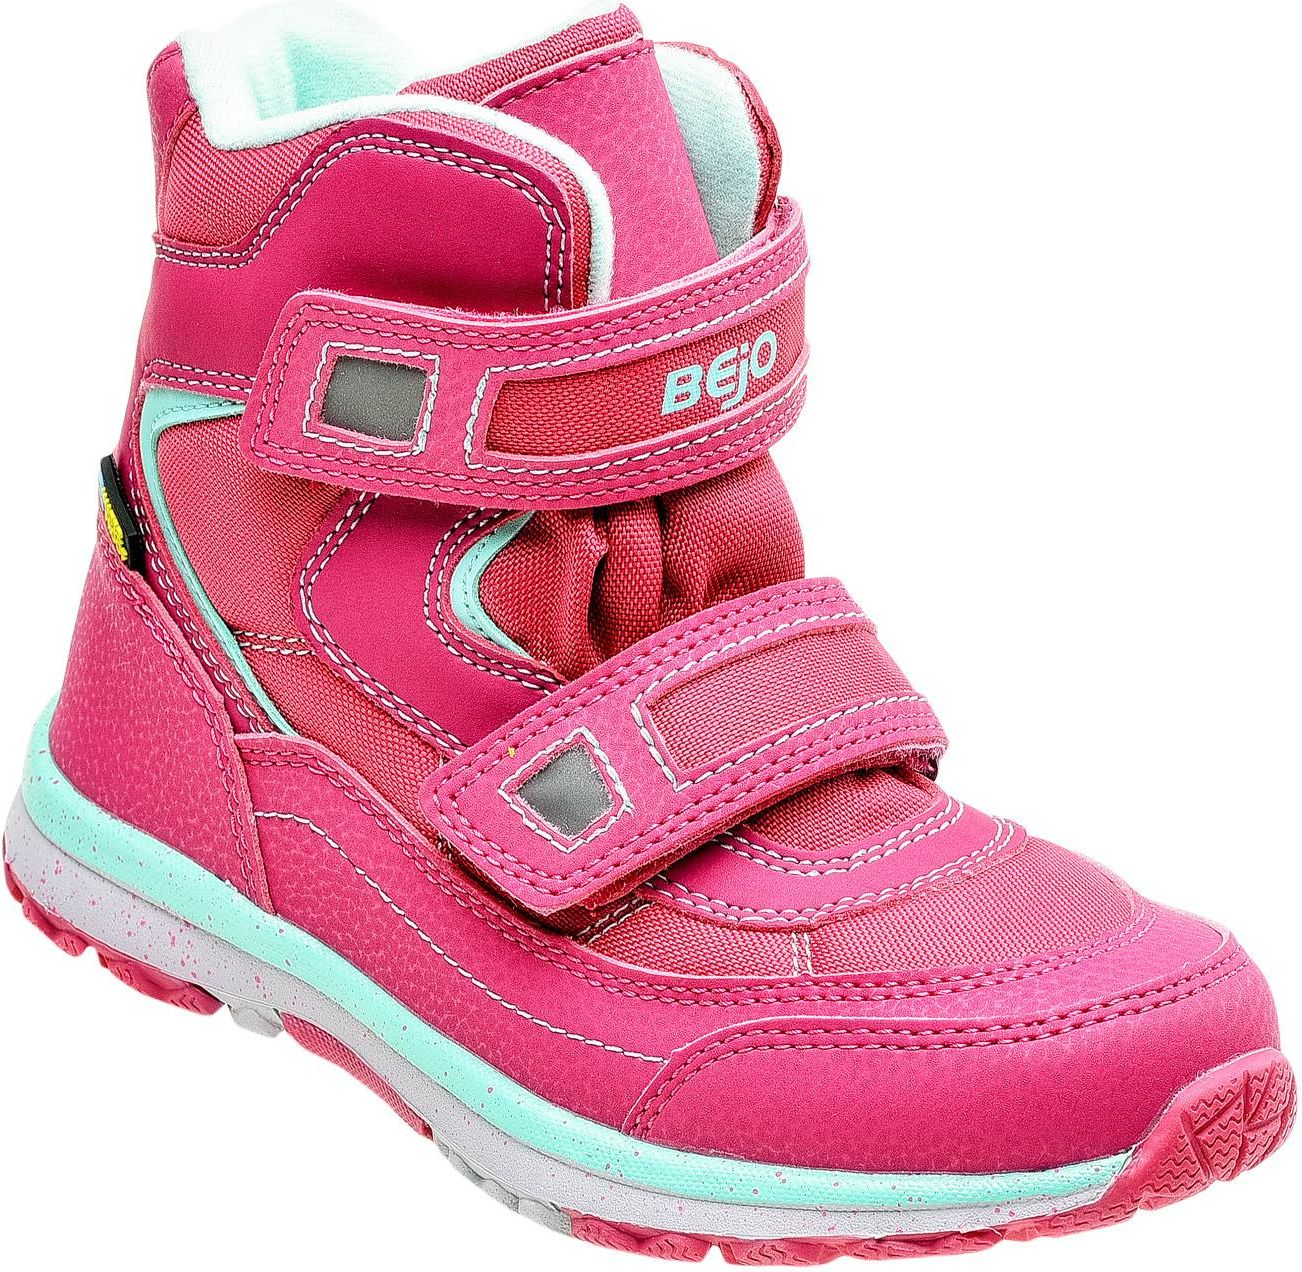 BEJO Buty dzieciece Piner Jr Fuchsia/dark Fuchsia/mint Green r. 34 5264542